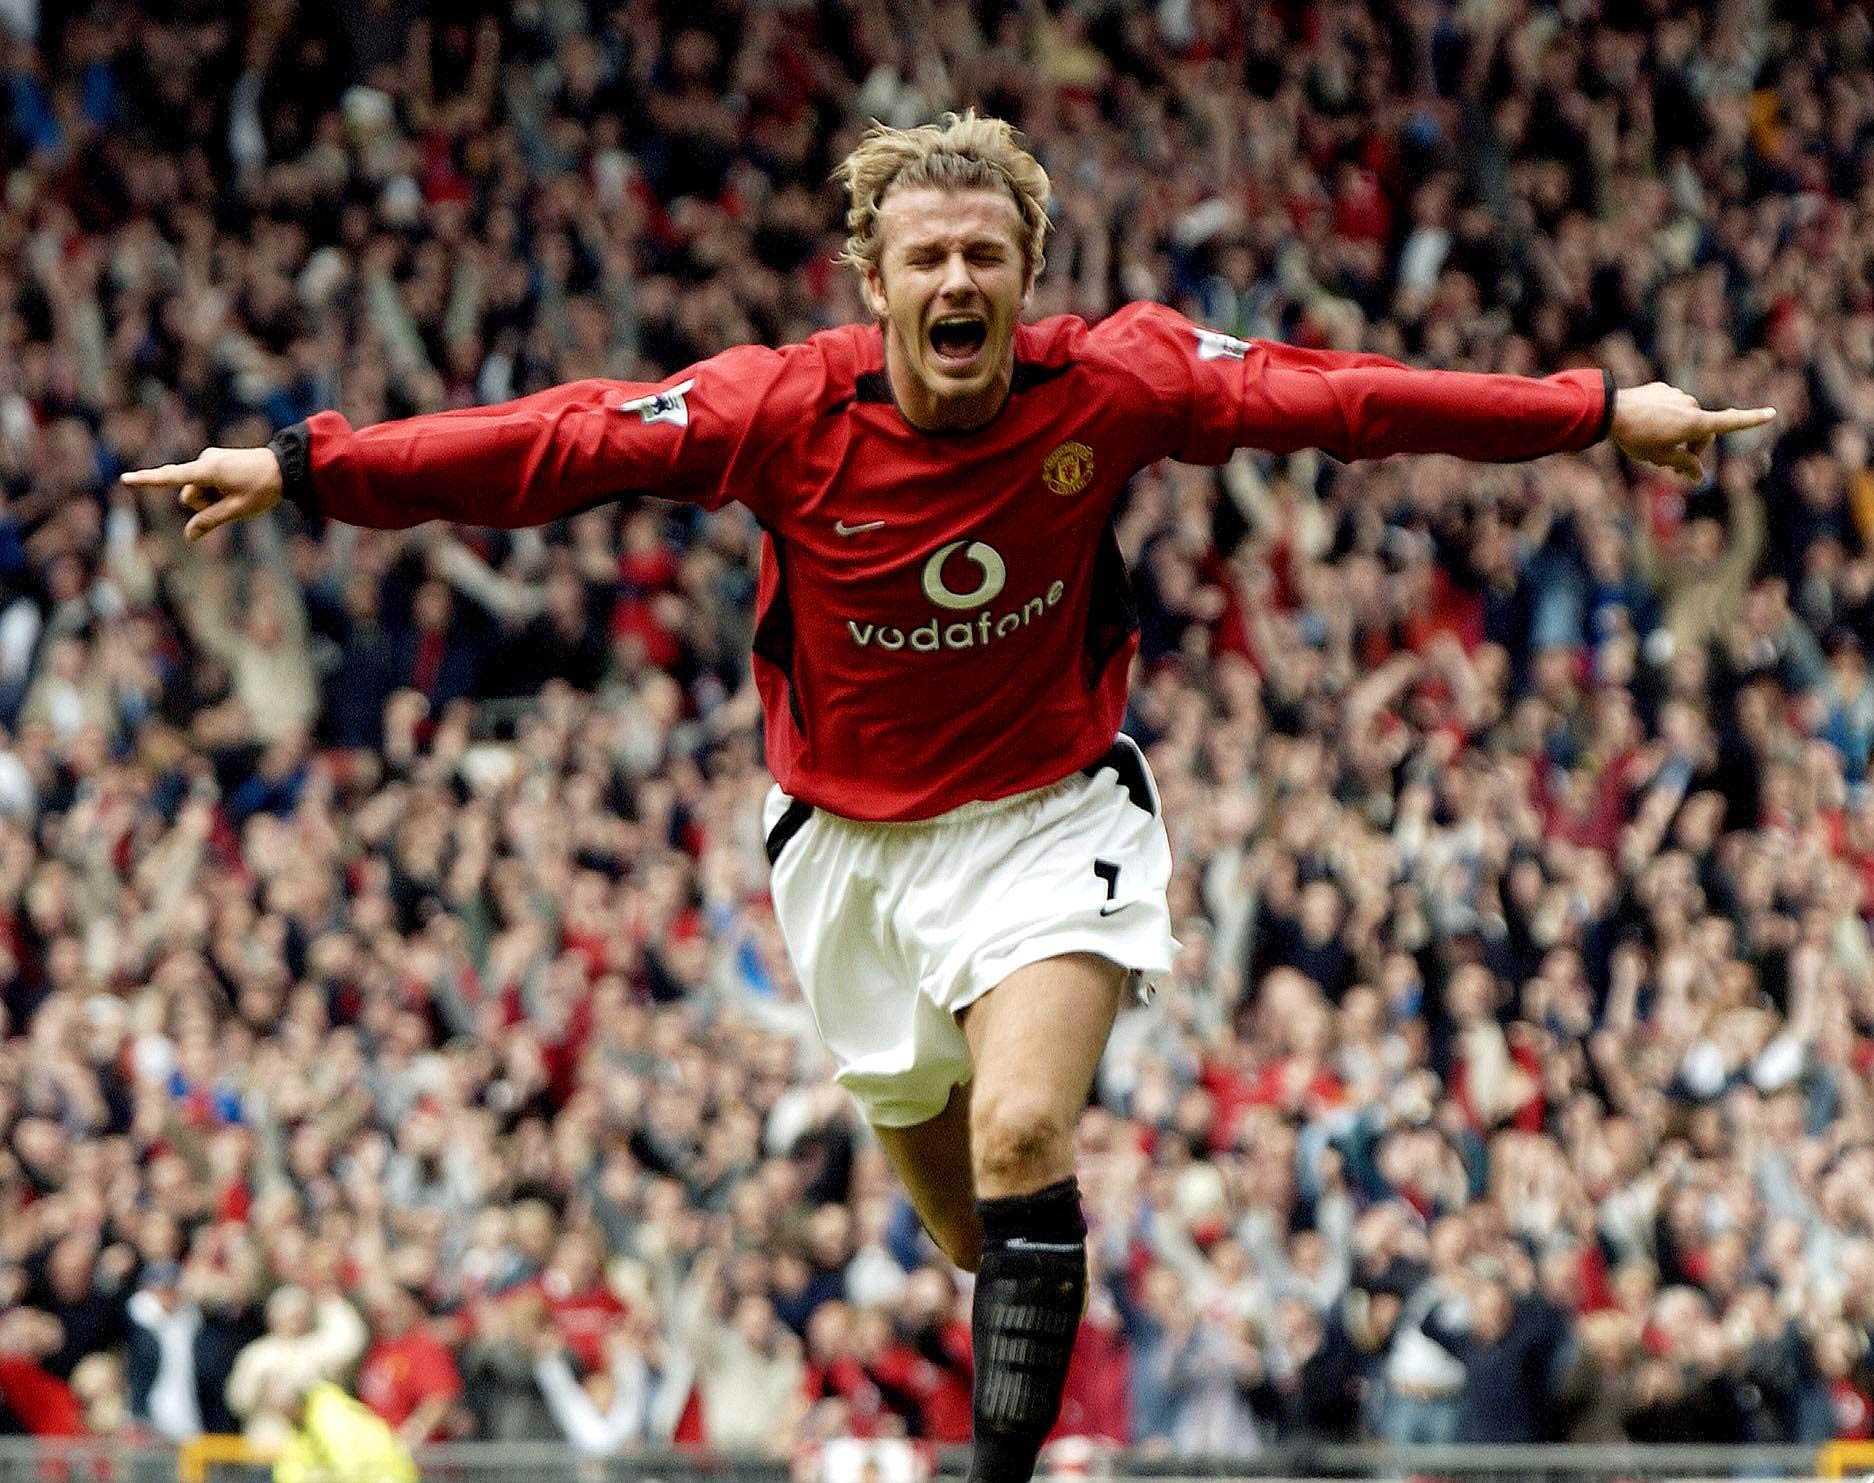 David Beckham celebrates after scoring during a match at Old Trafford, in Manchester, England in 2003.